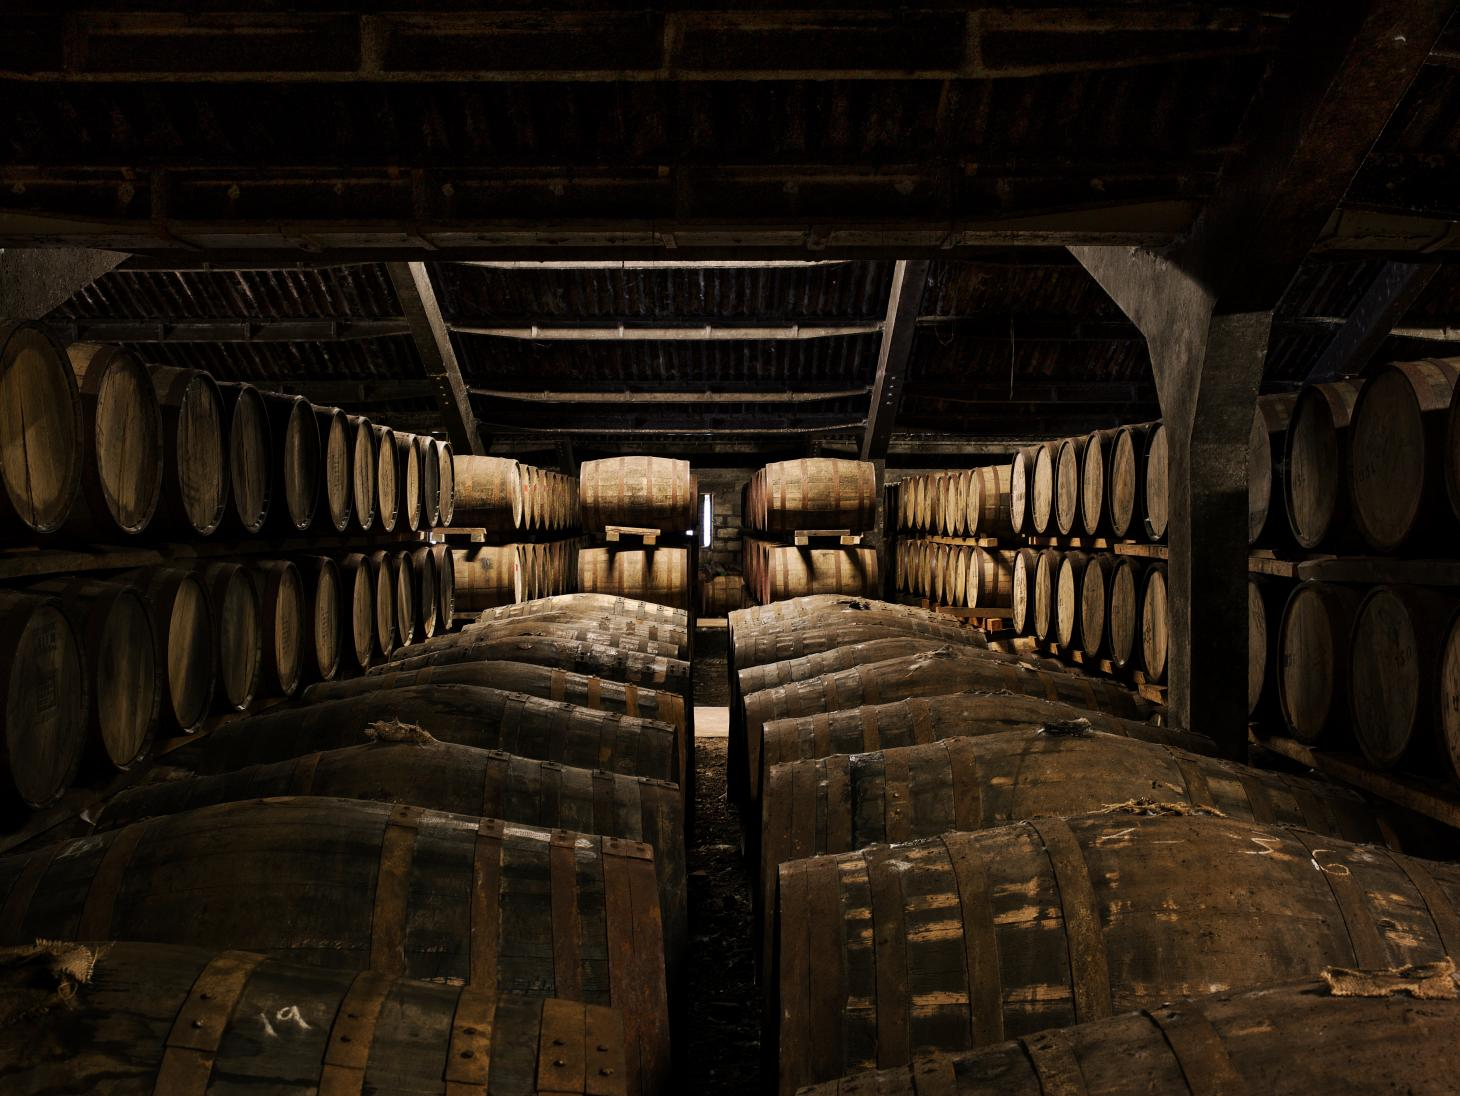 Dalmore whiskey ageing in wooden barrels